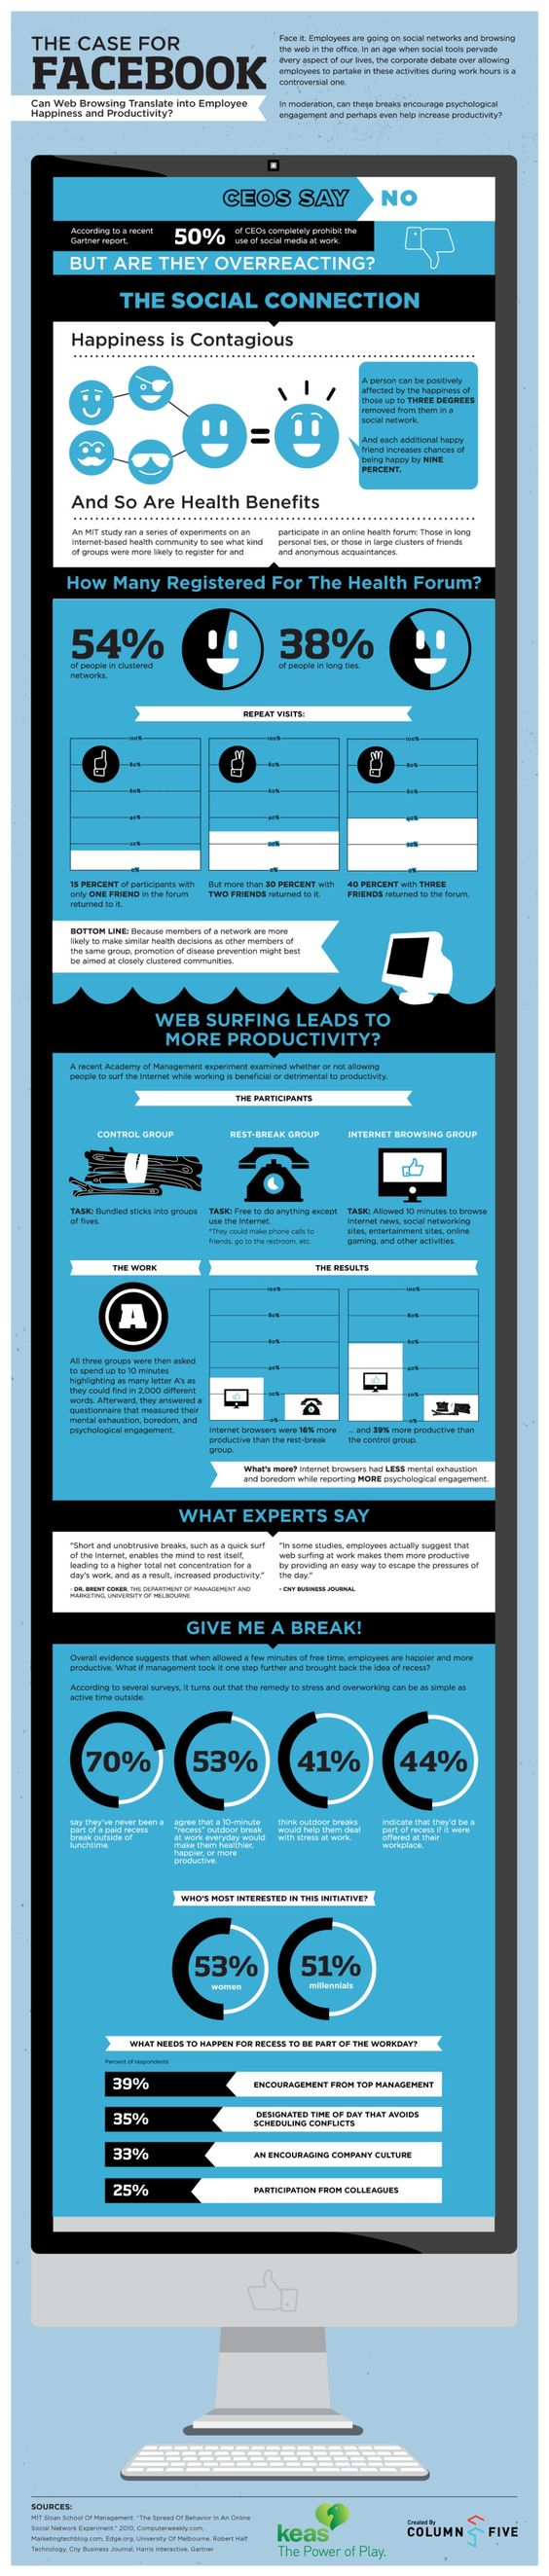 Why CEOs Should Allow Facebook in the Workplace [INFOGRAPHIC]